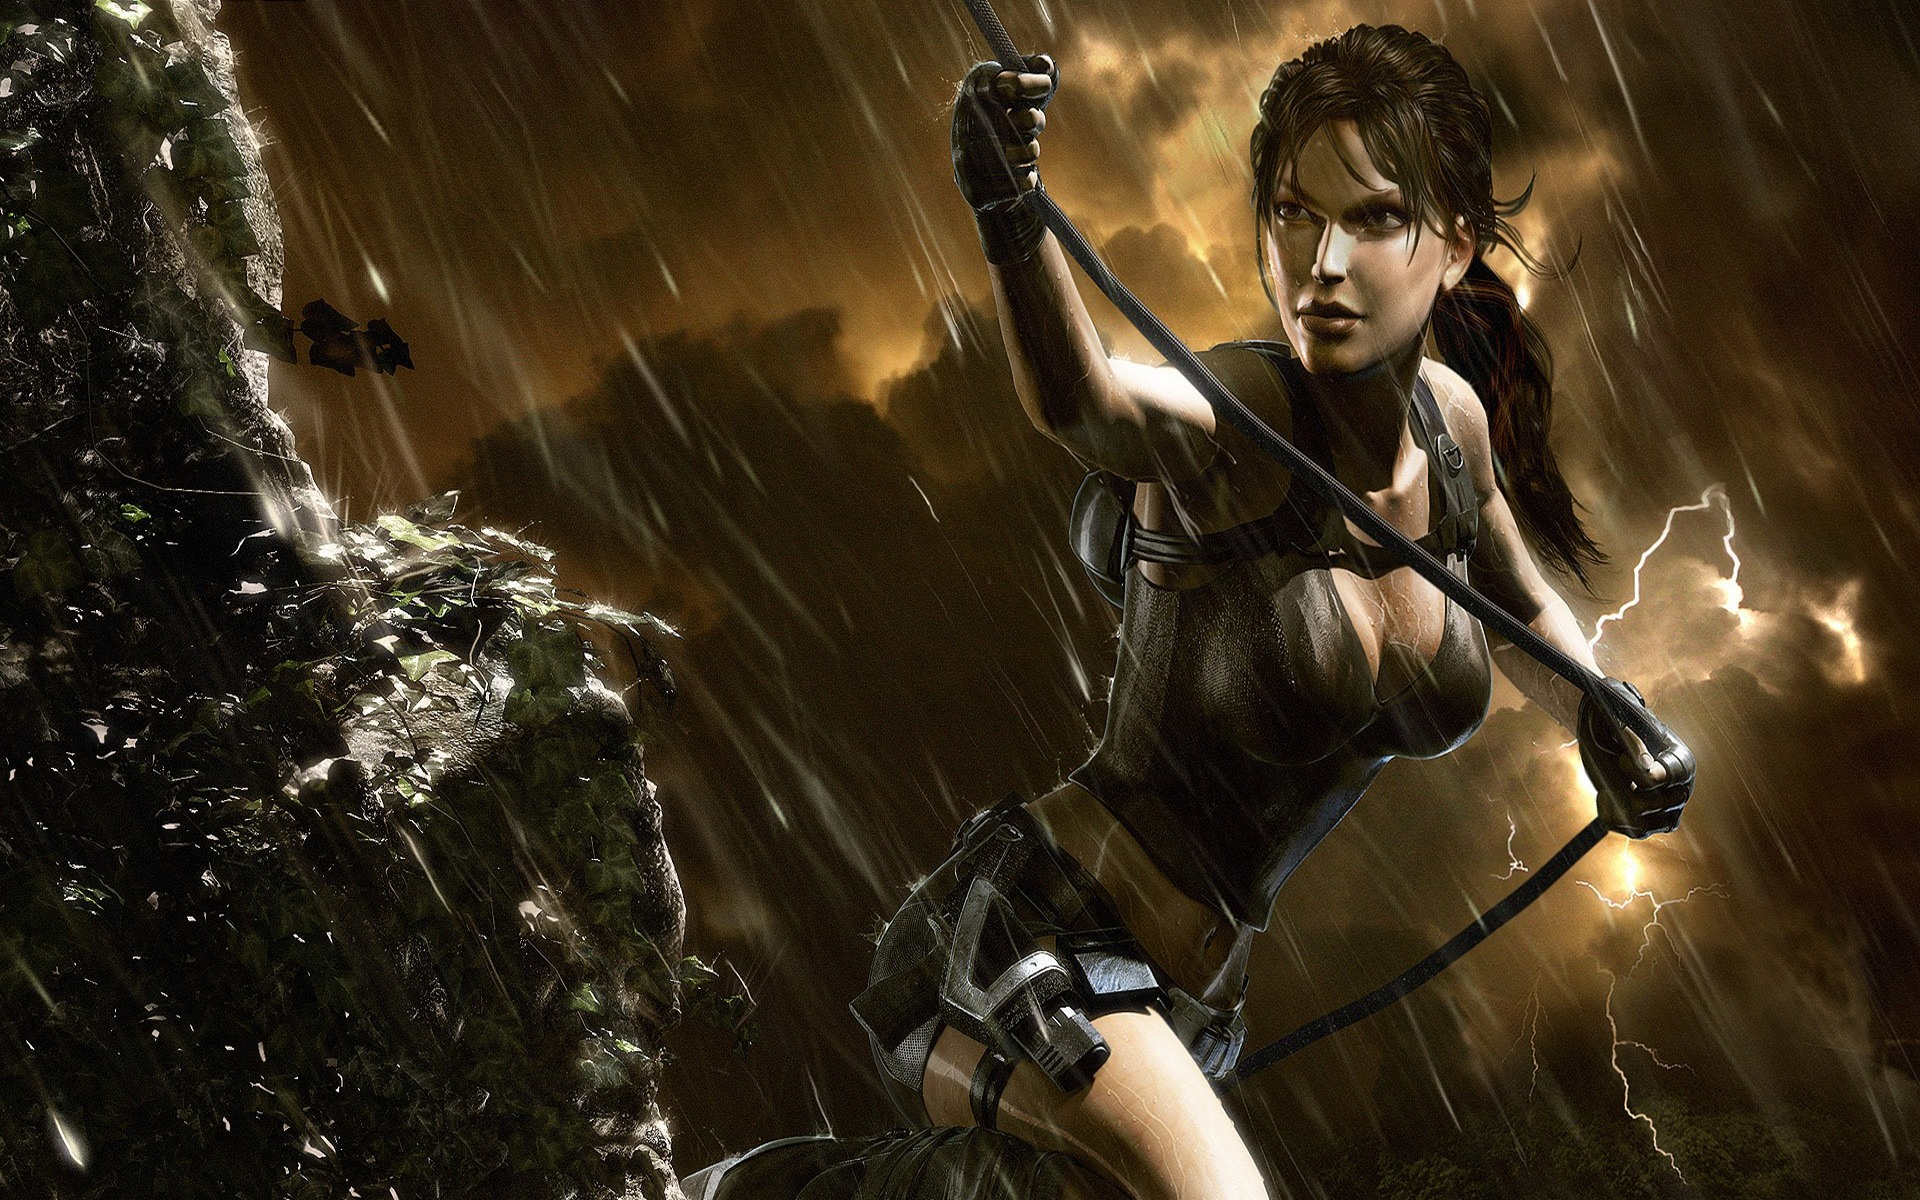 Free Download Tomb Raider Wallpapers Tomb Raider Stock Photos